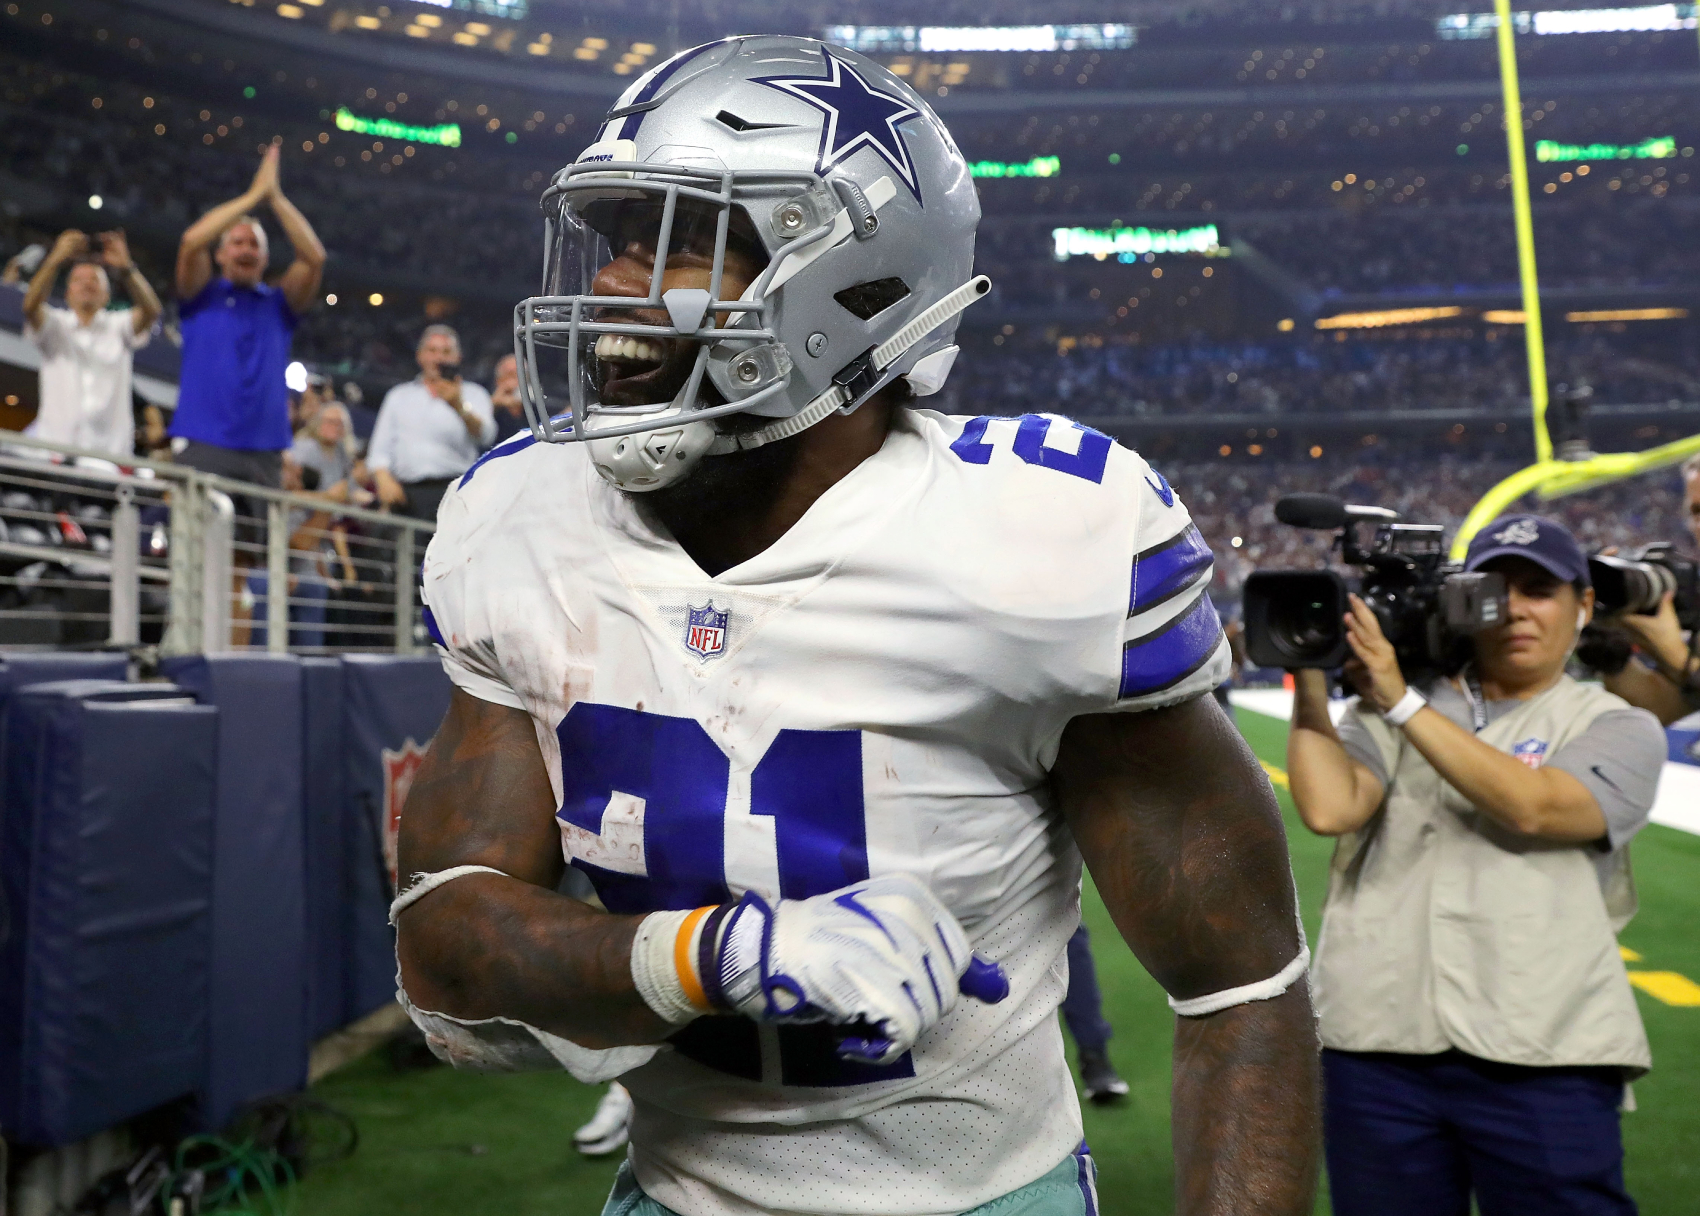 Ezekiel Elliott plays with a pretty talented quarterback on the Dallas Cowboys in Dak Prescott. He, however, is in awe of someone else.